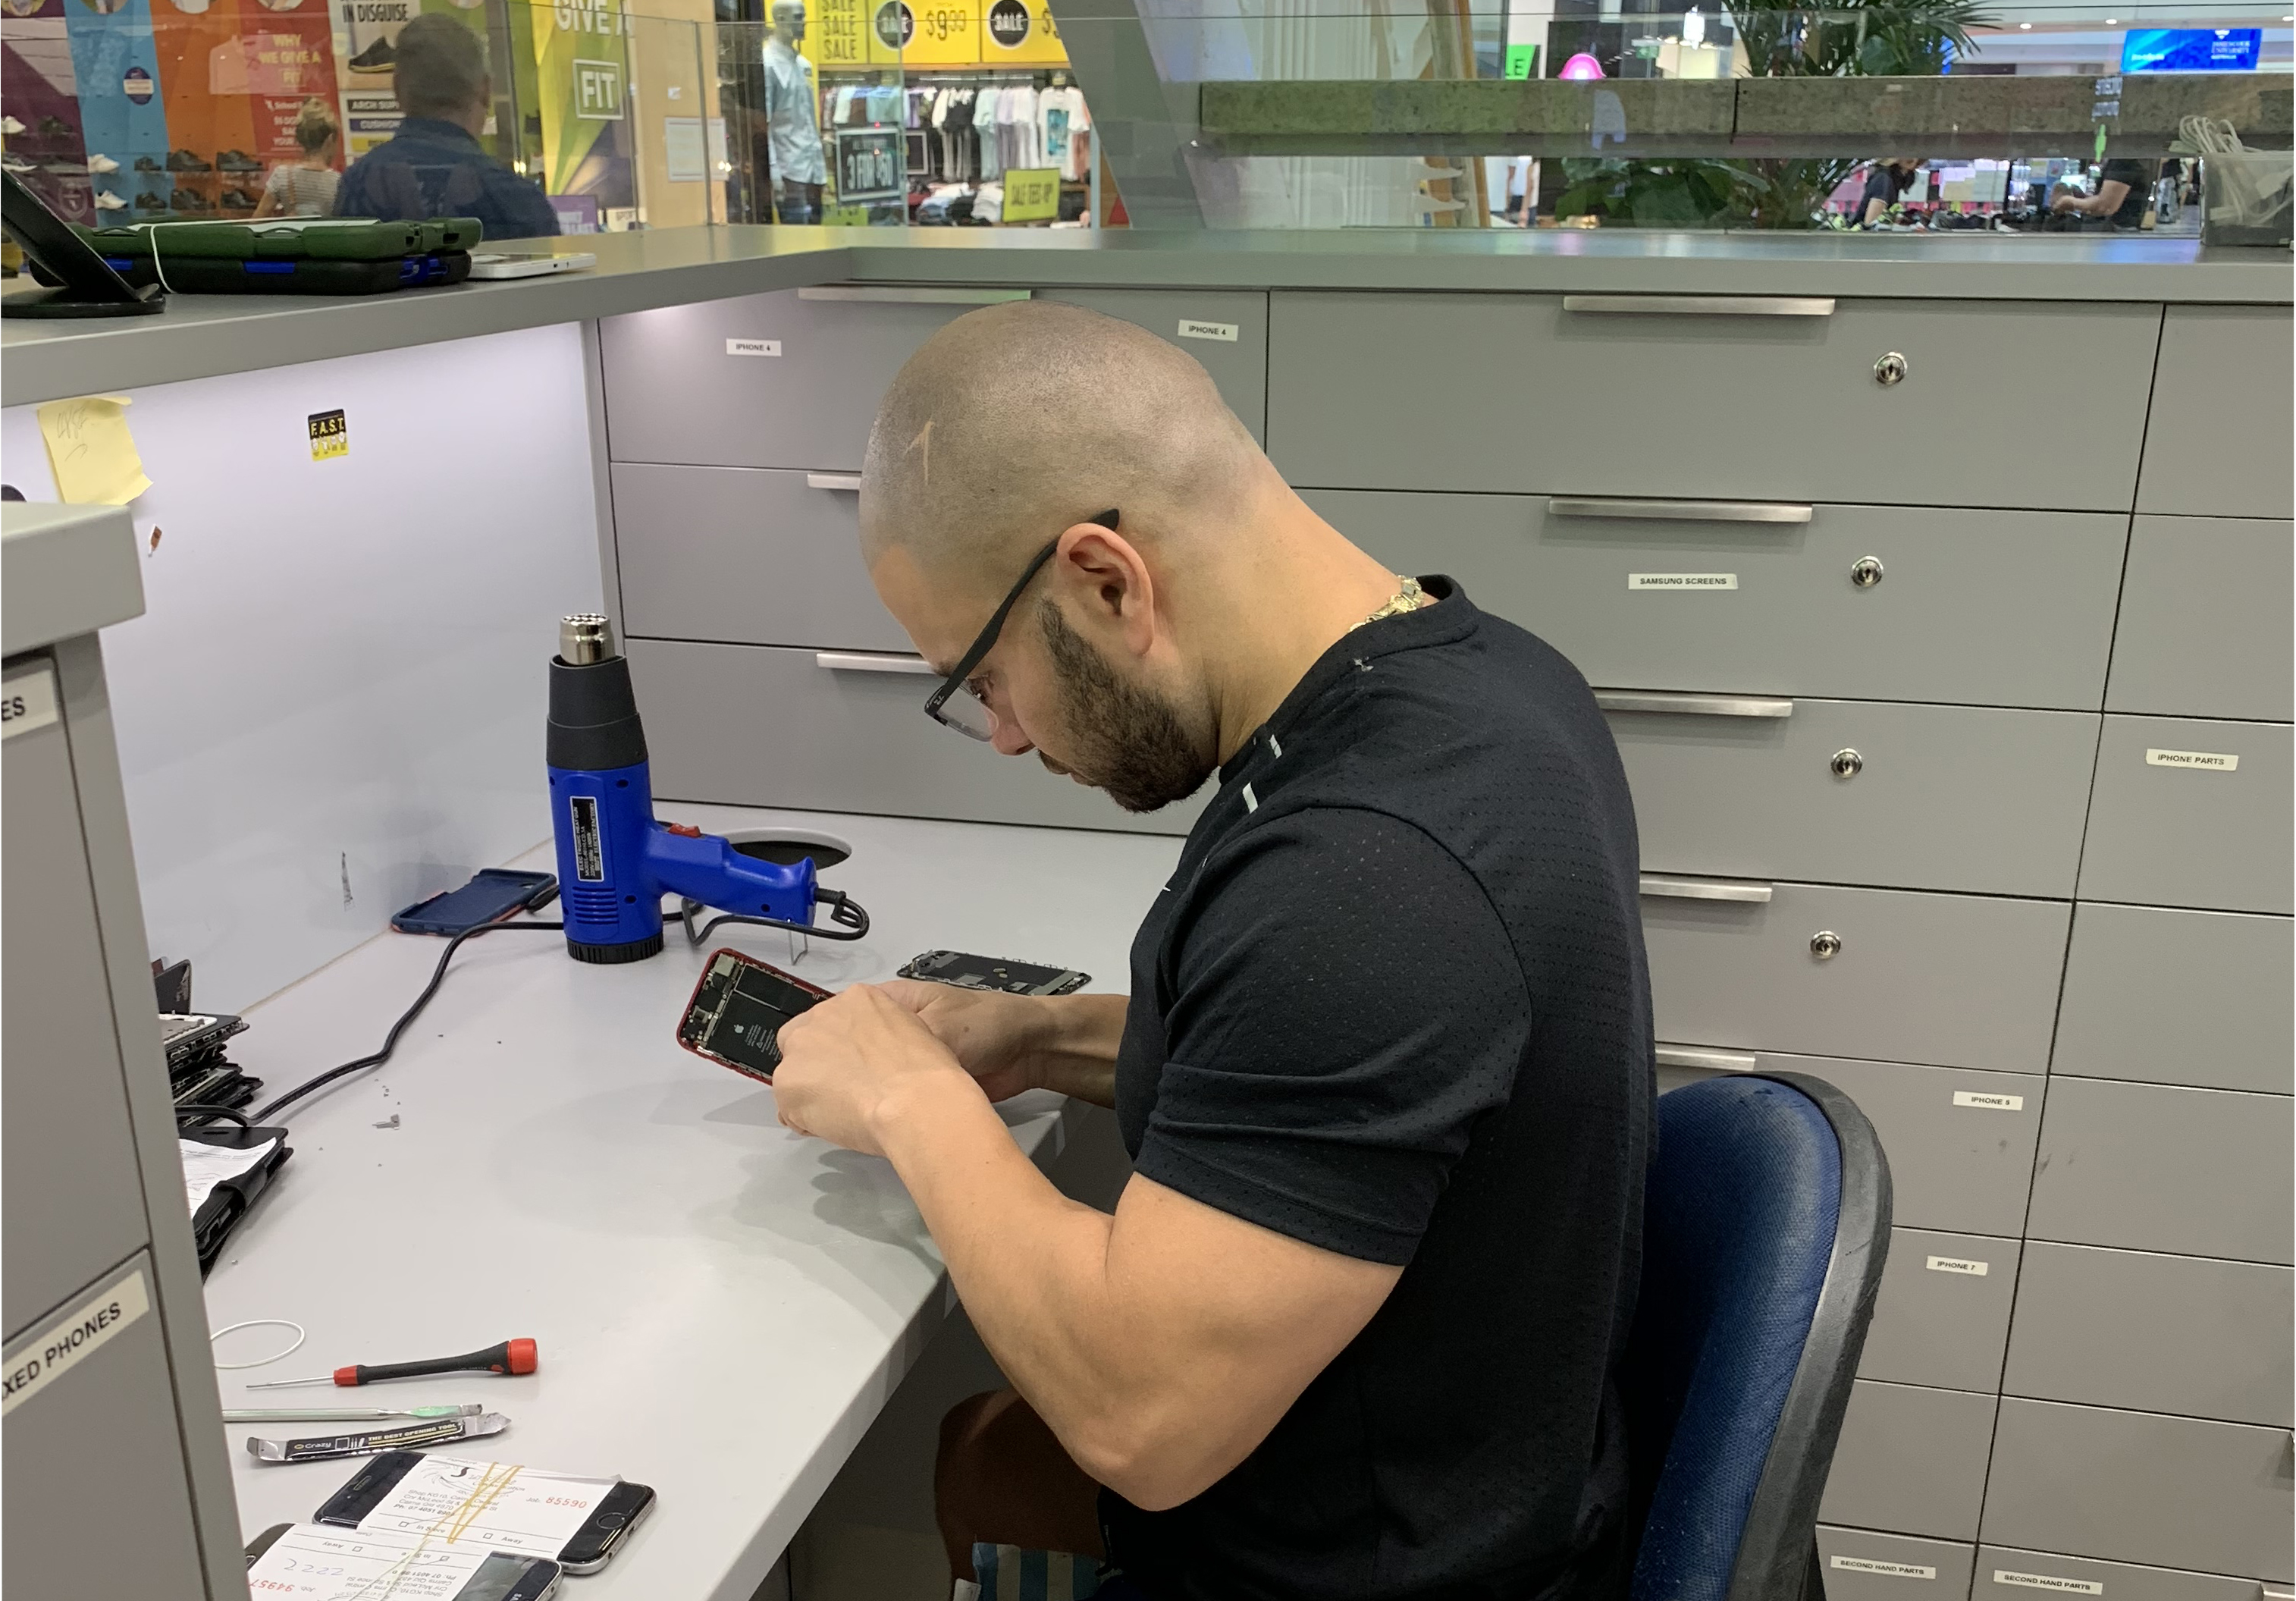 Mobile phone repair technician working